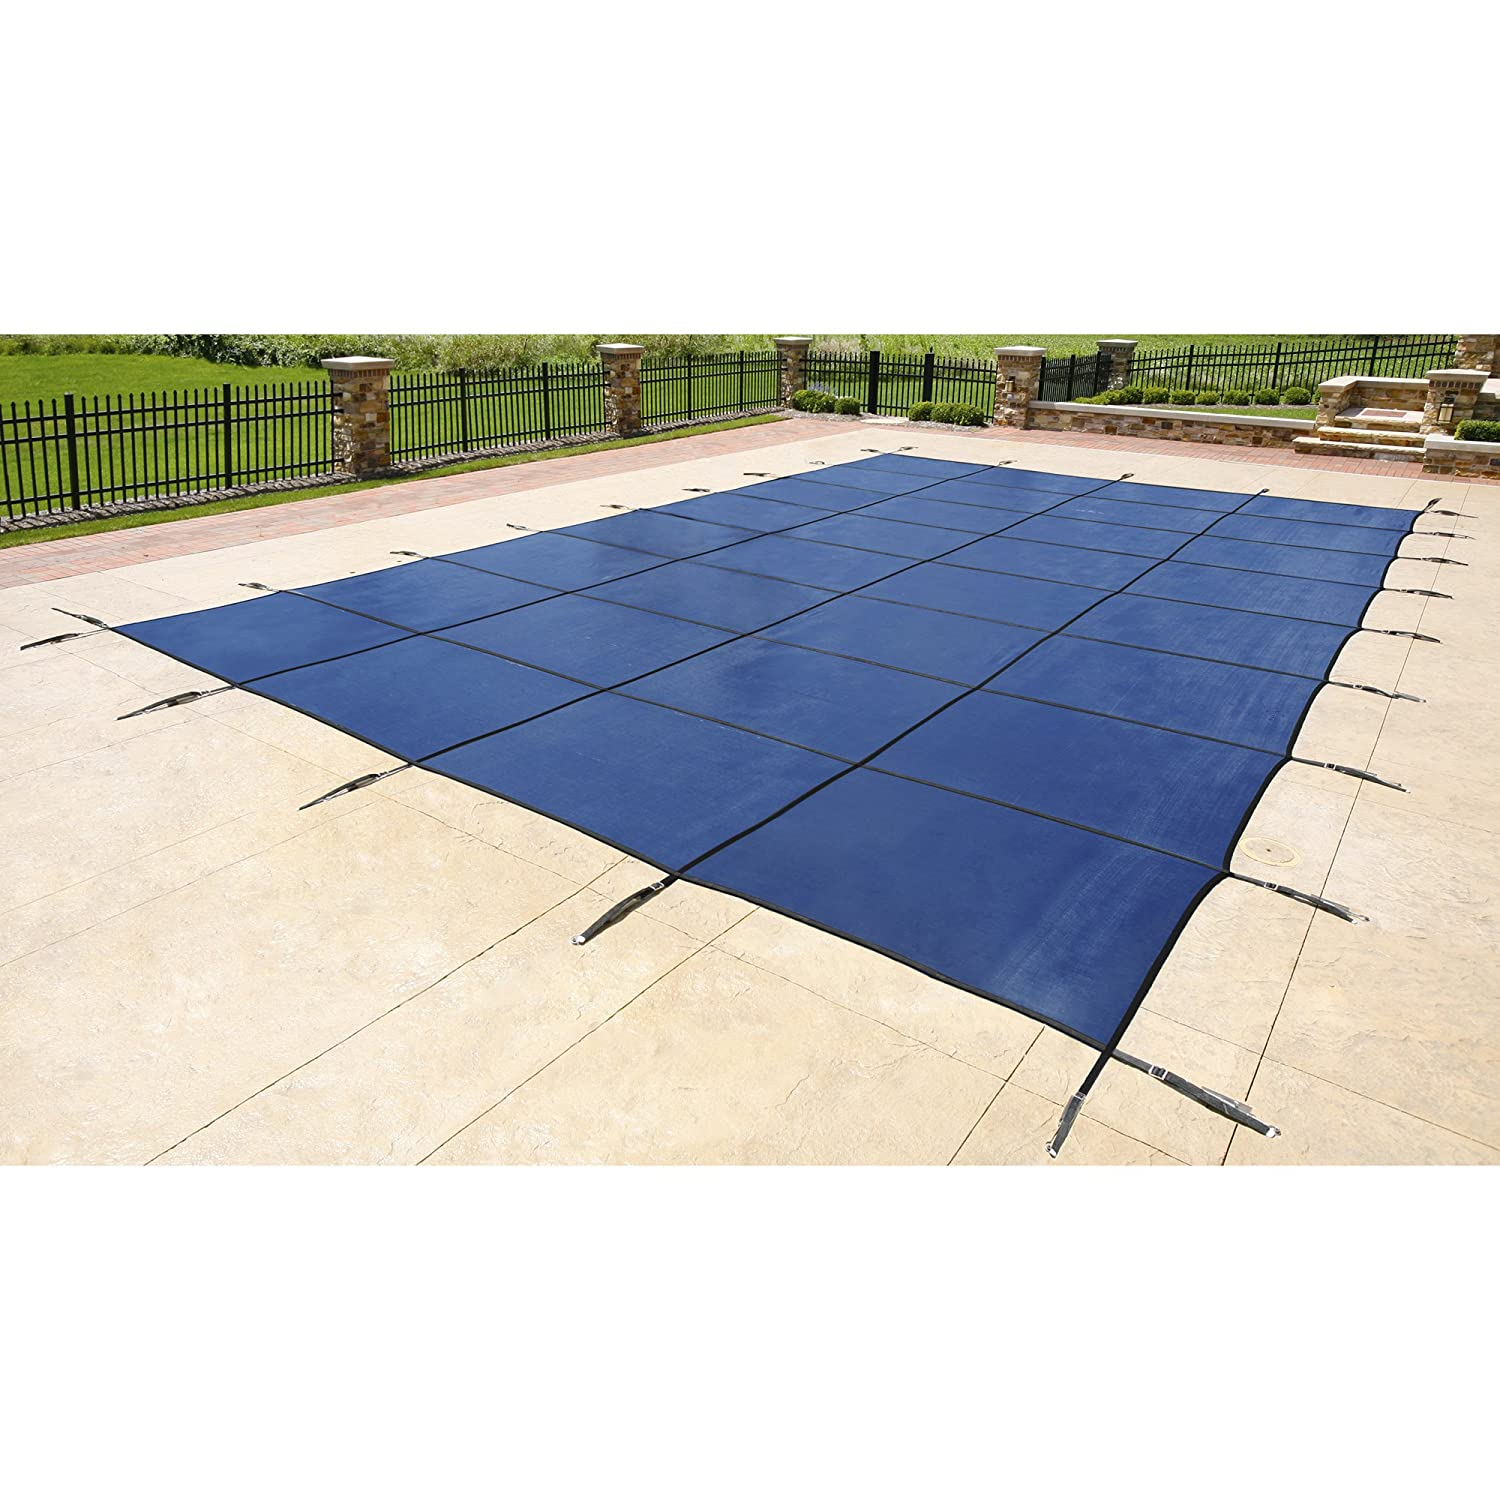 Blue Wave Rectangular In Ground Pool Safety Cover